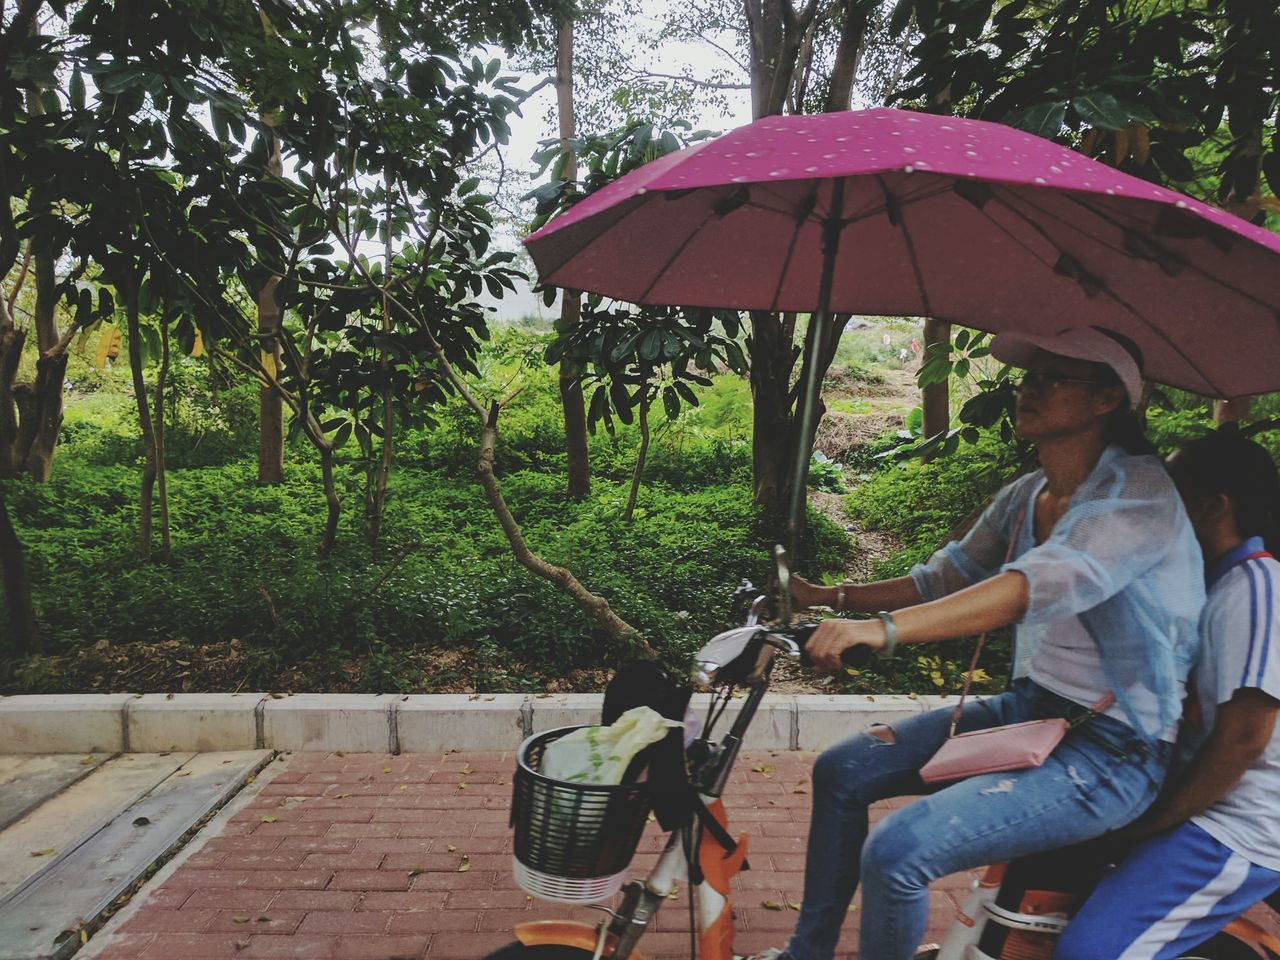 What Who Where Capture The Moment Adventure Speeding Enjoy The New Normal Land Vehicle Streetphotography China View China In My Eyes CyclingUnites Cycling Motherhood Moments